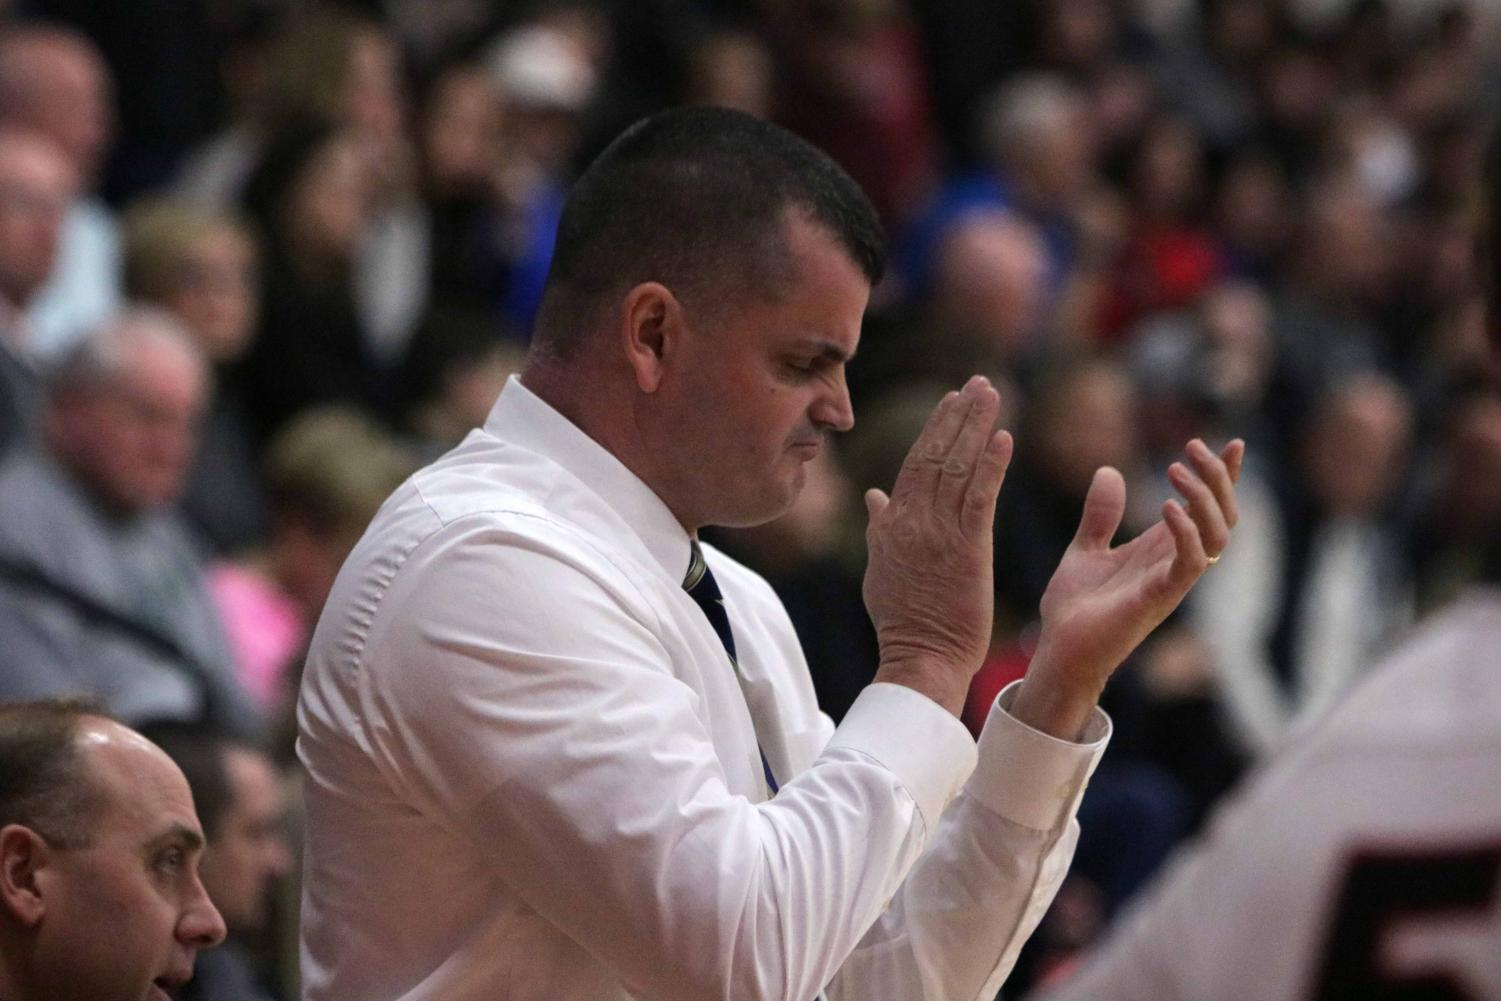 After the outcome of a play, varsity basketball coach Chad Logan claps and cheers for the varsity boys basketball team.  The boys basketball team played Linden on Jan. 18.